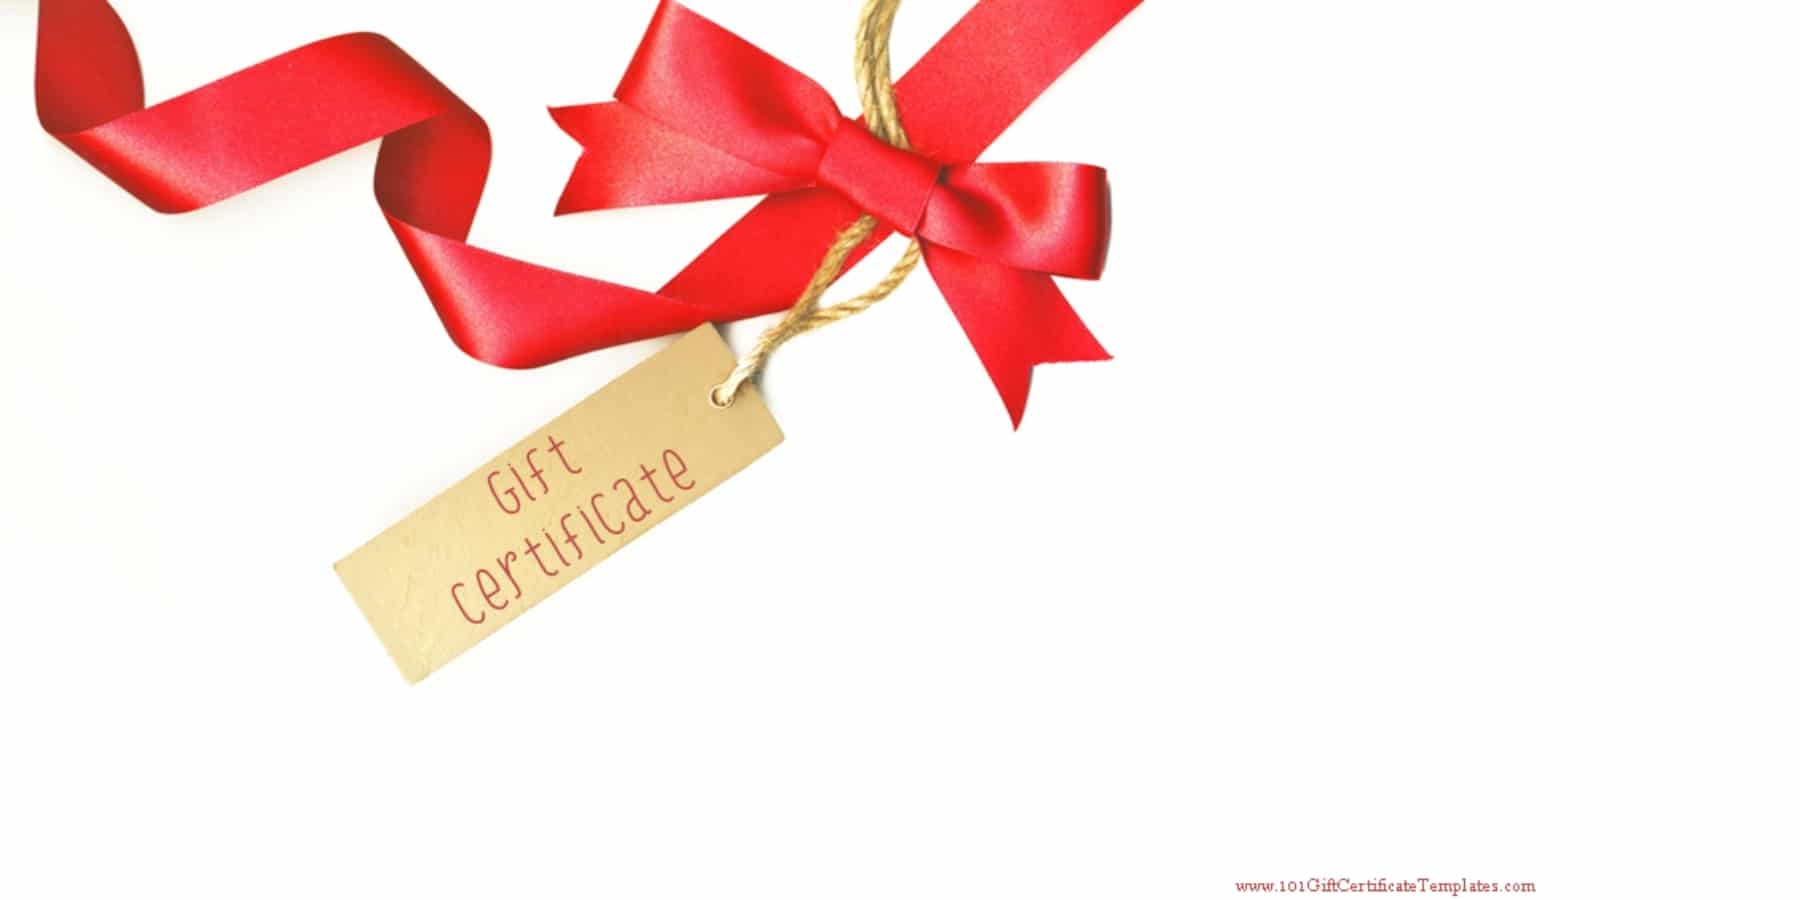 Printable gift certificate templates gift card which can be customized in any way with our gift card maker customize print yelopaper Images